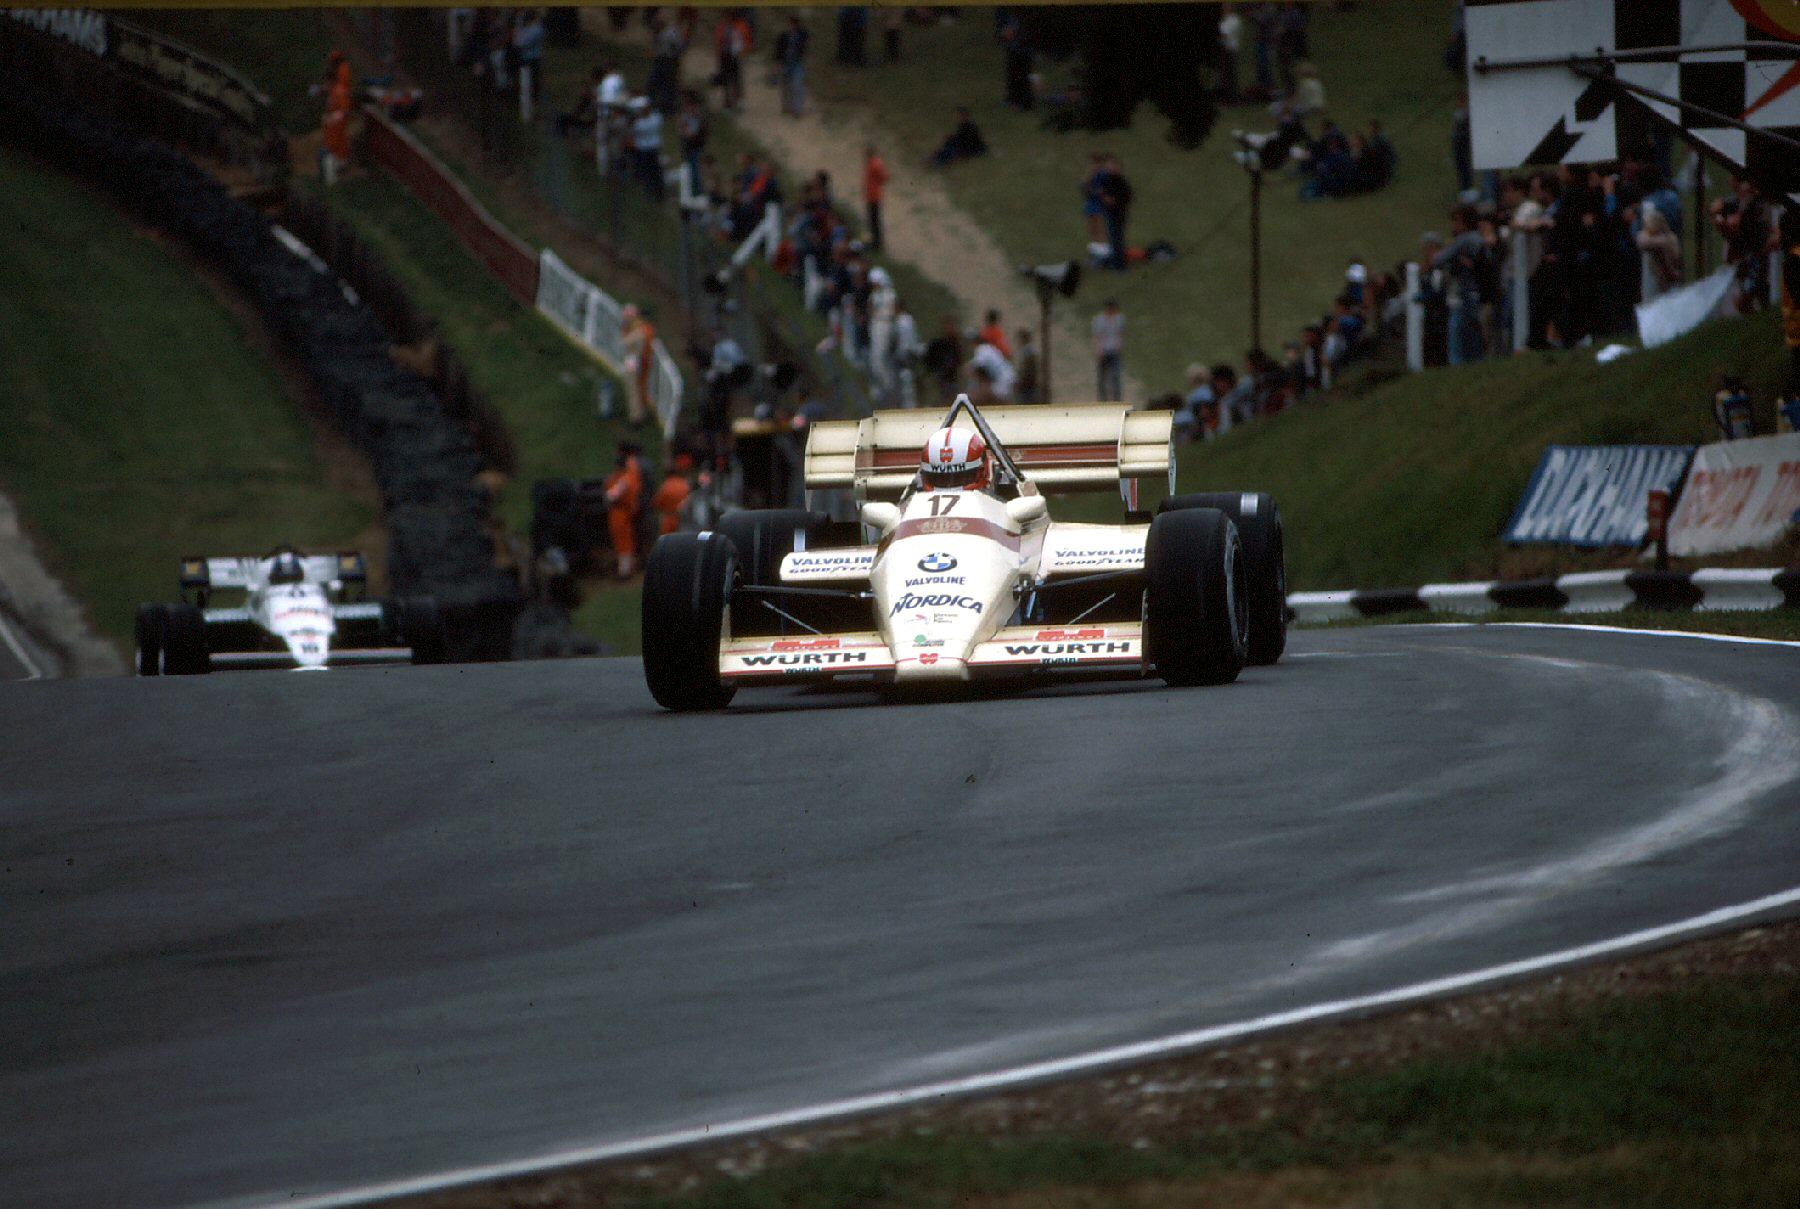 marc_surer__great_britain_1984__by_f1_history-d5f7rnj